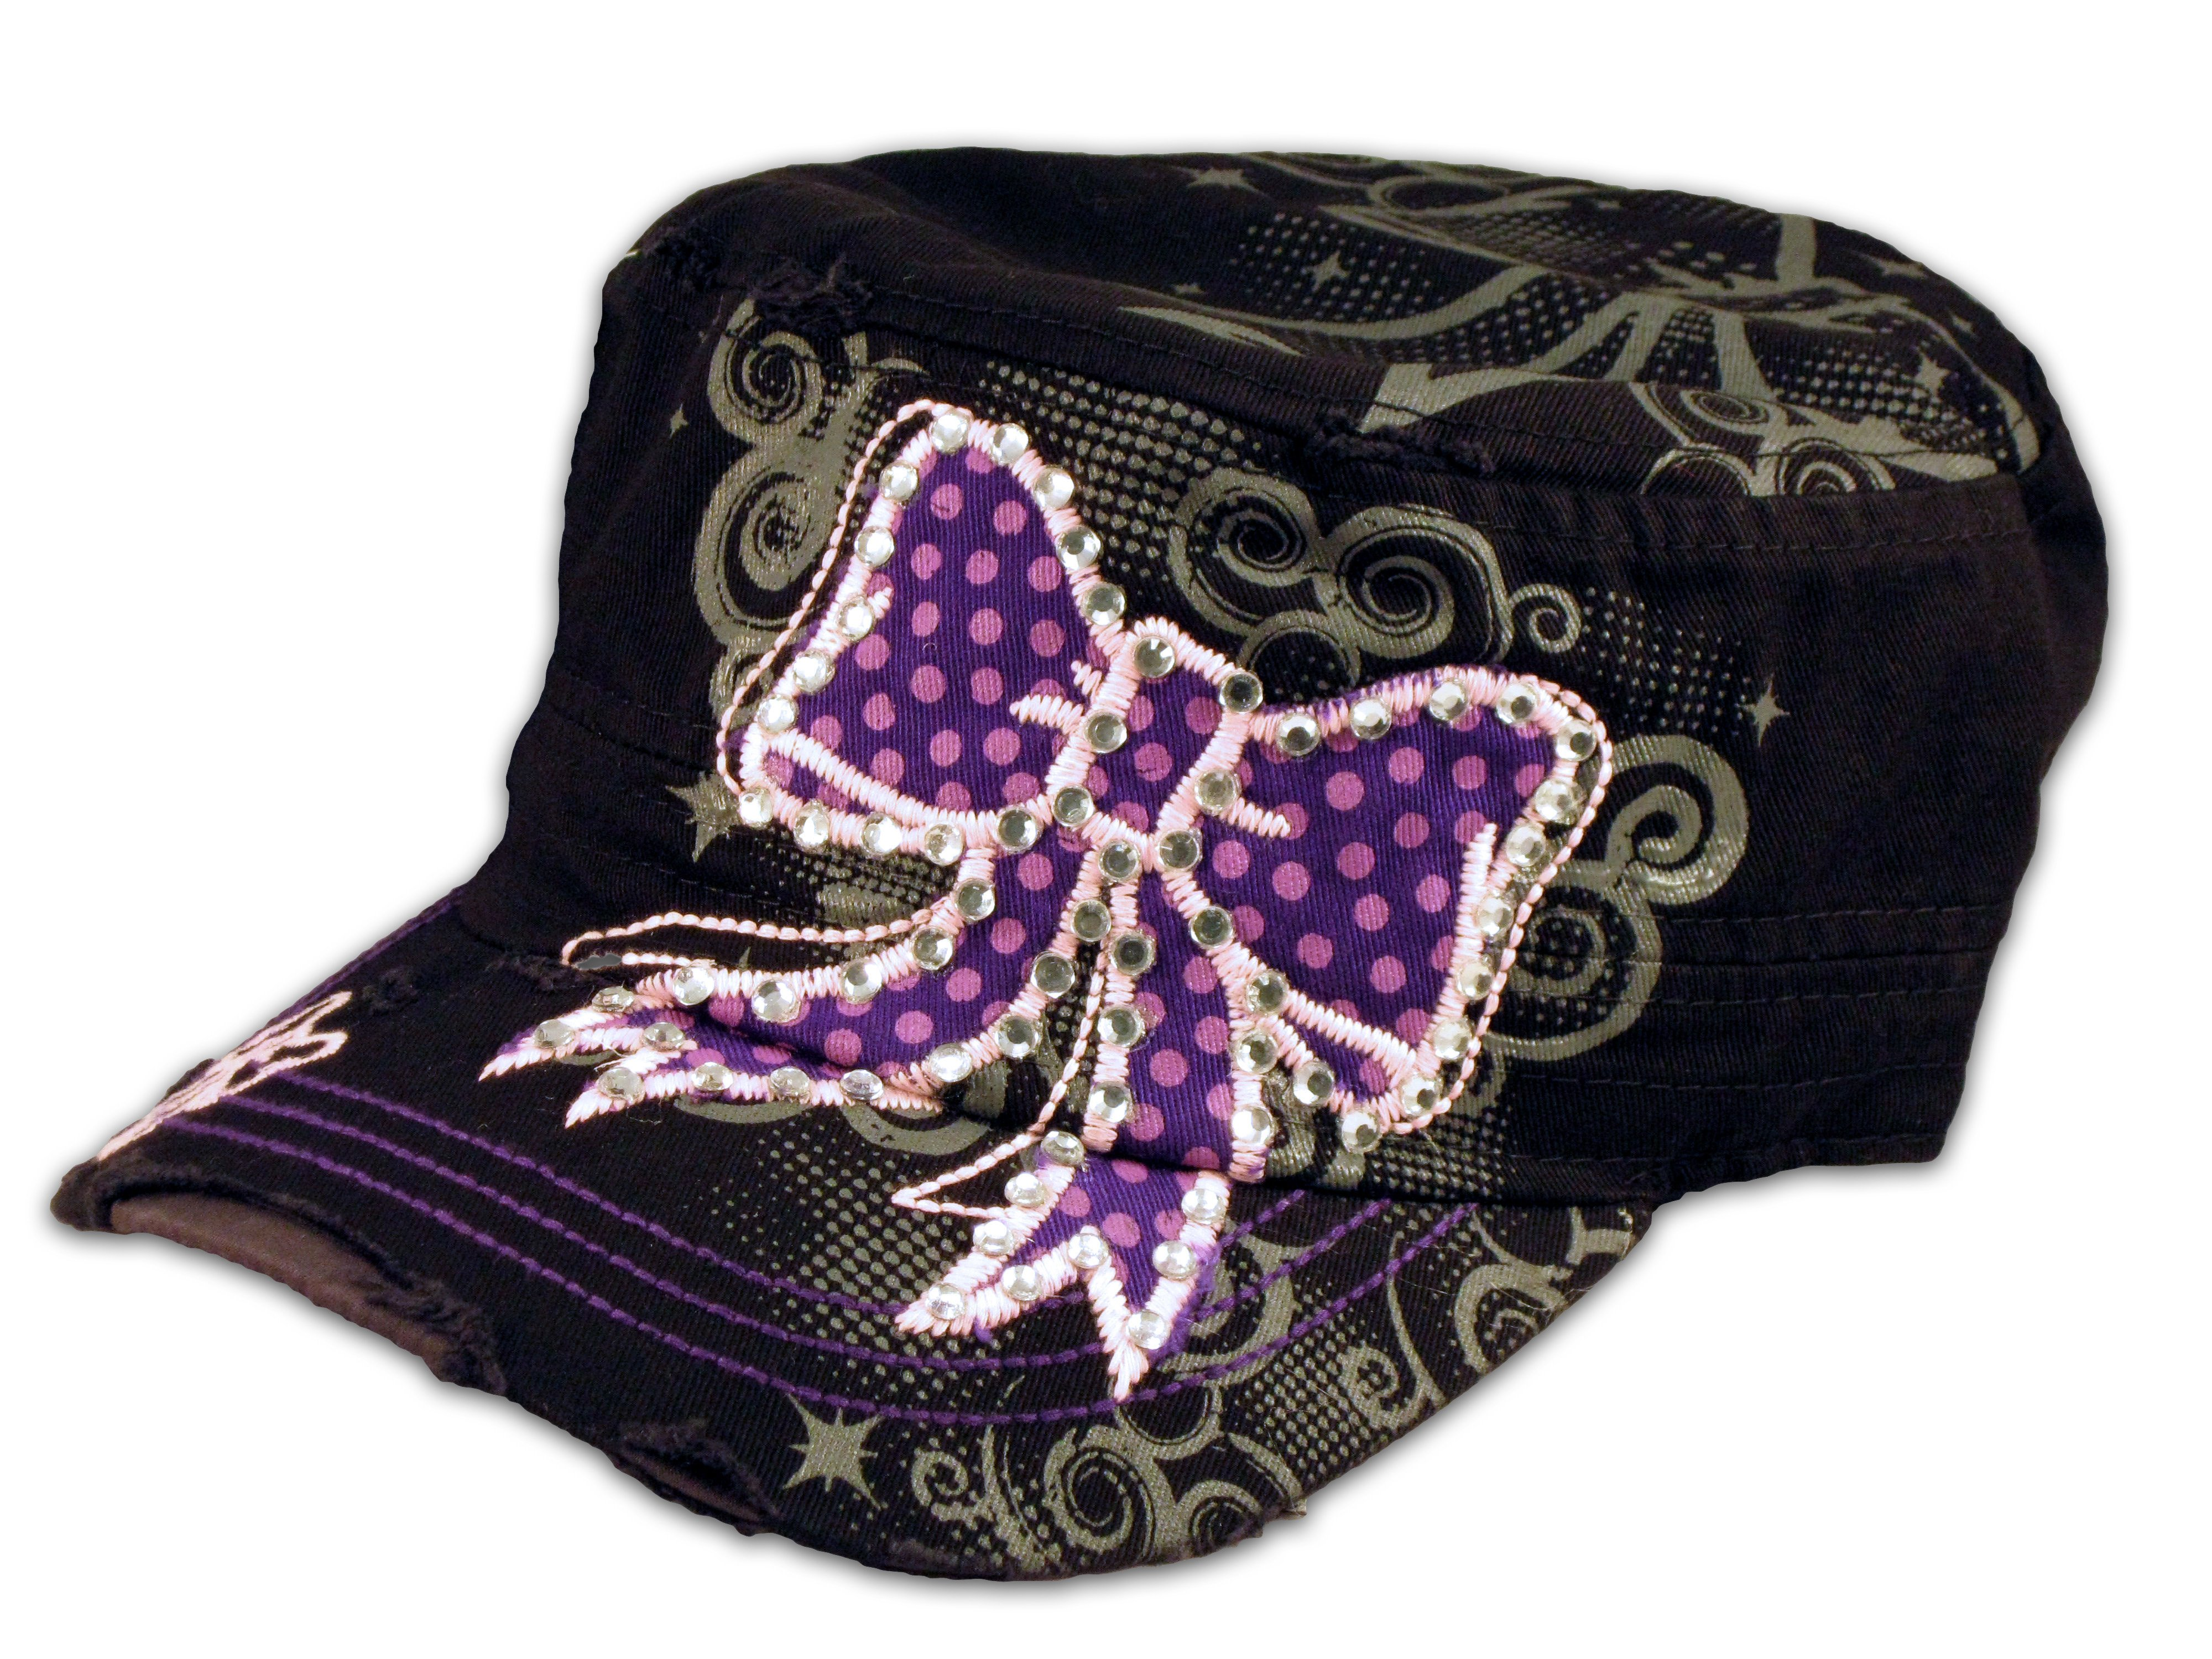 62cbe9dd2f3 Purple Bow on Black Cadet Cap Distressed Military Army Hat - Printed ...